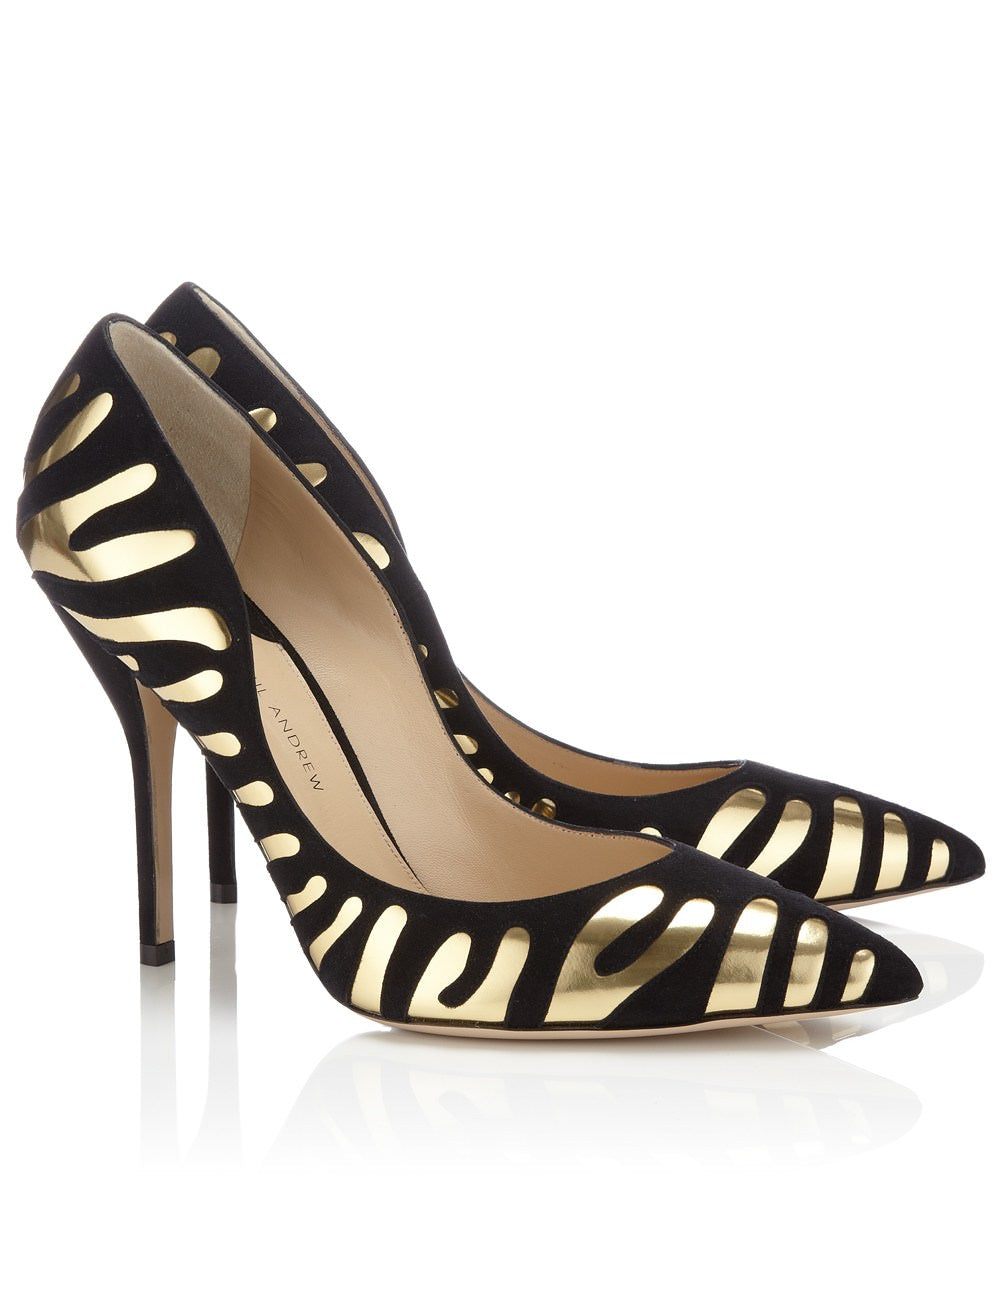 Paul Andrew Black Suede and Gold Tigrado Pumps Heels